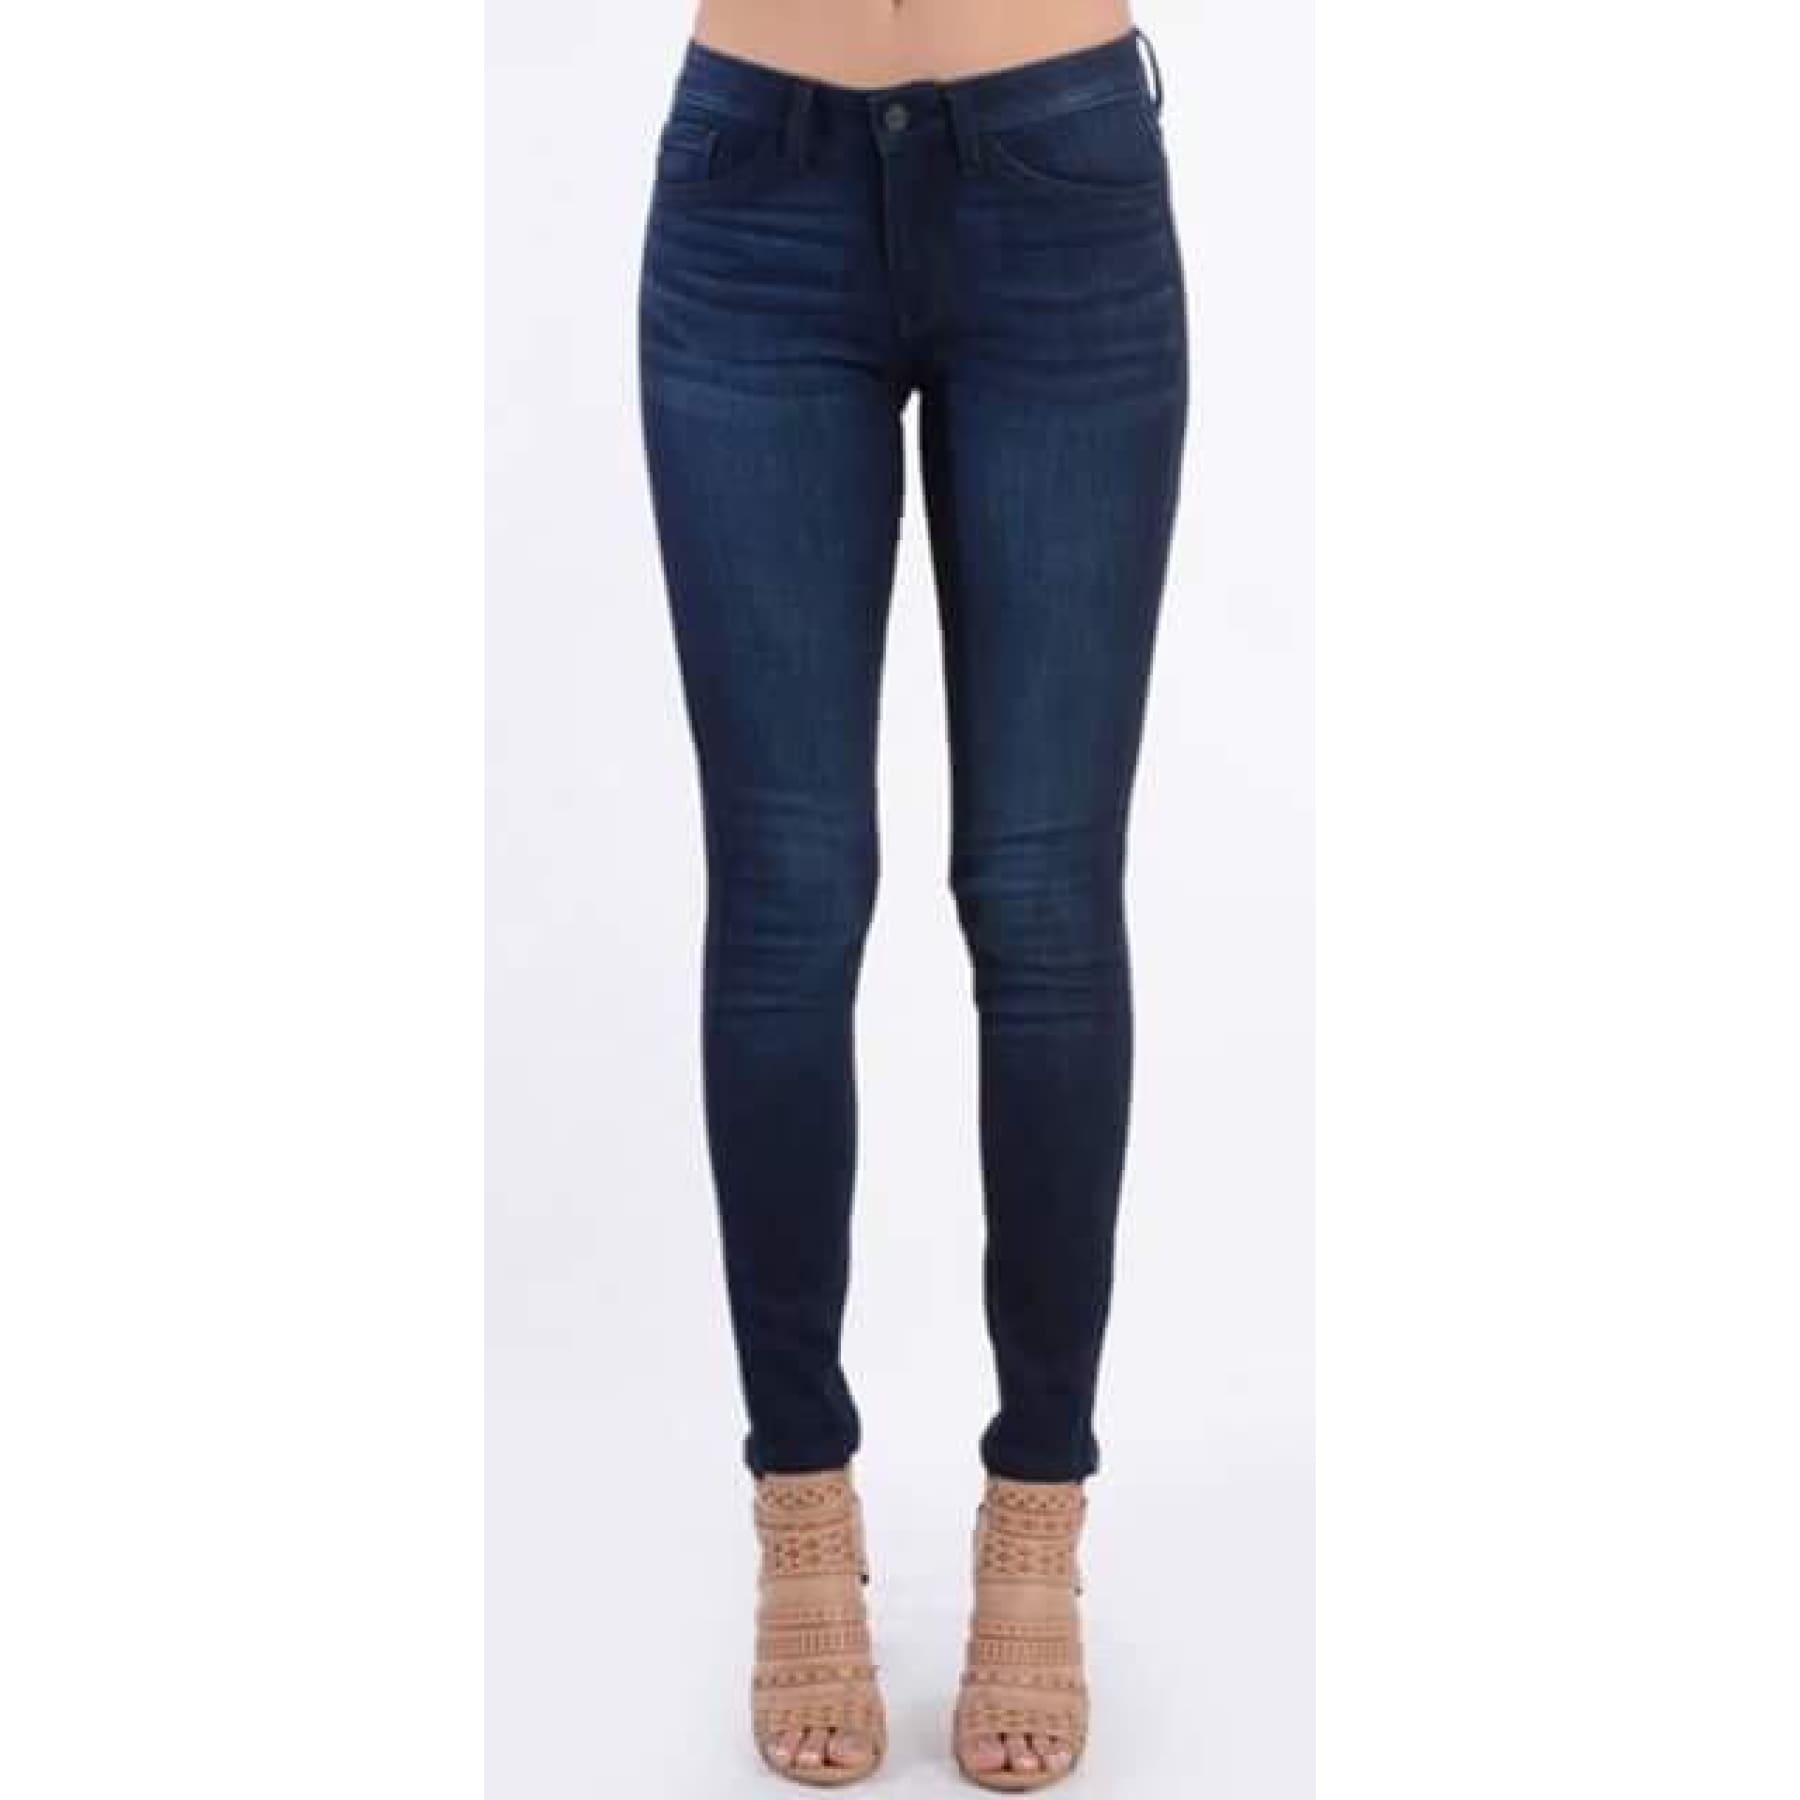 The Perfect Dark Wash Skinny Jeans,Jeans - Dirt Road Divas Boutique